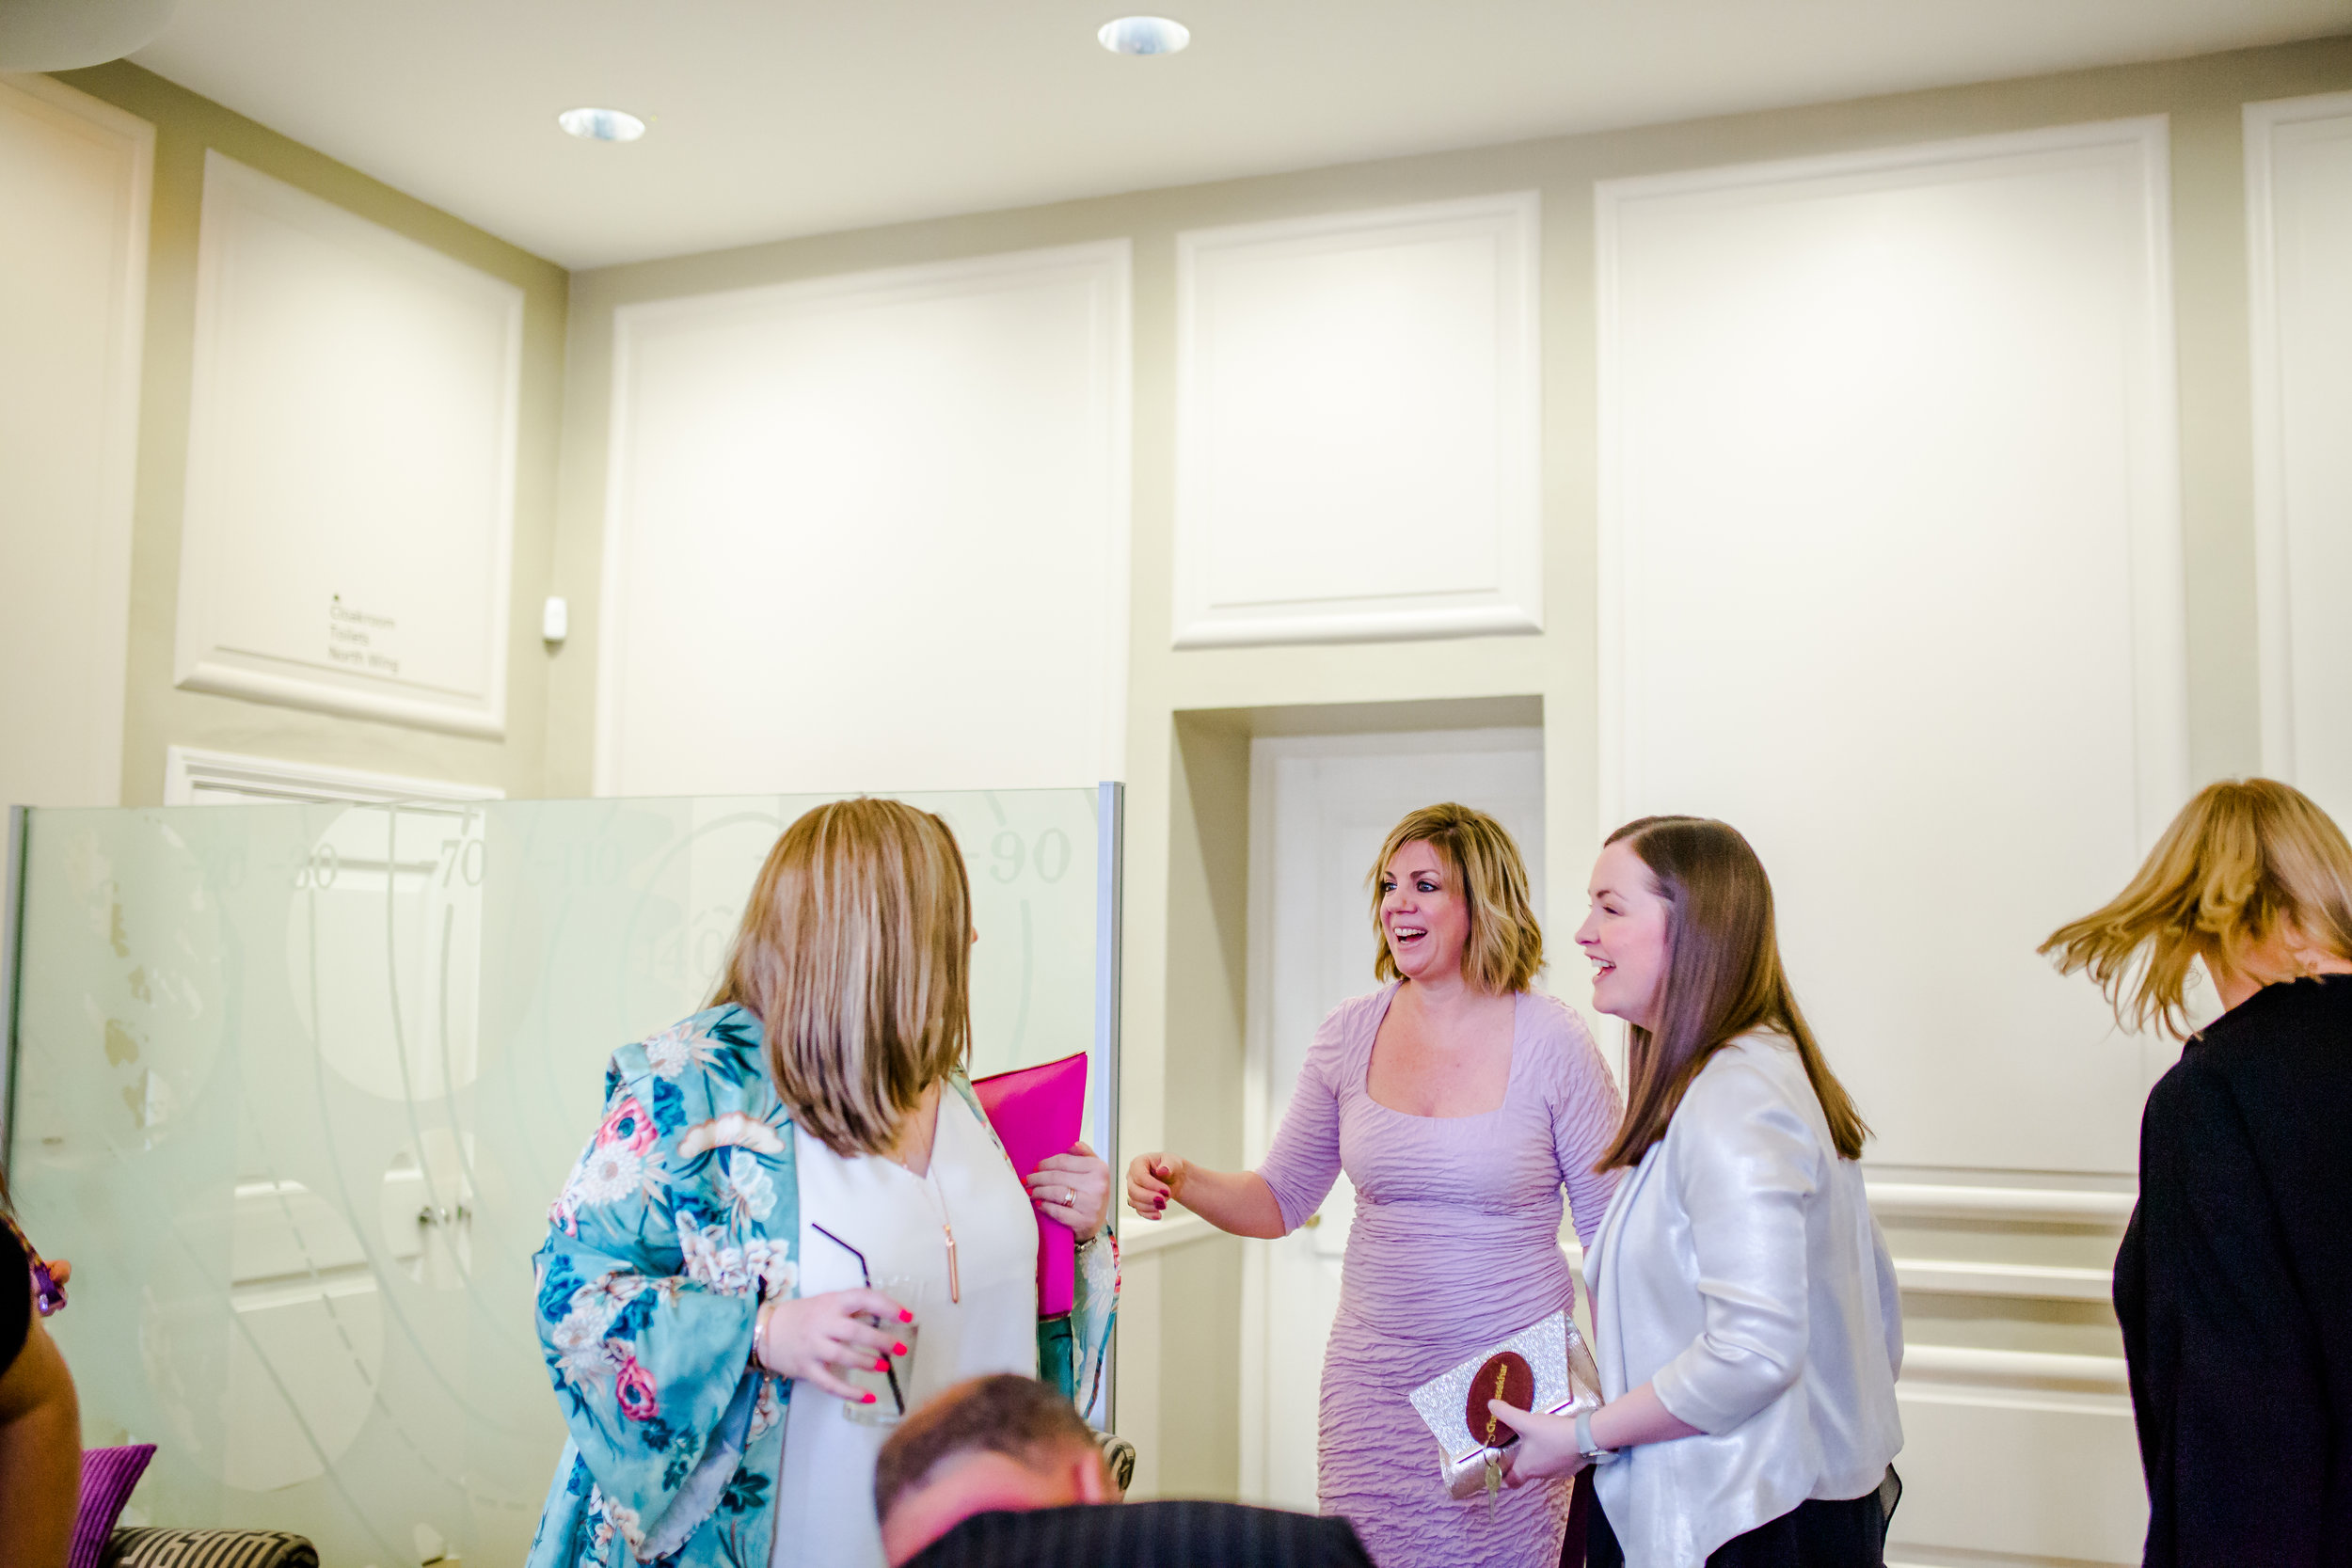 Introductions all round. Siobhan Craven-Robins , luxury wedding coordinator, meet Vanessa of luxury wedding coordinator  Rocks and Frocks and Nadia Wood of luxury wedding coordinators  Amulet Wedding and Events . See a theme here?